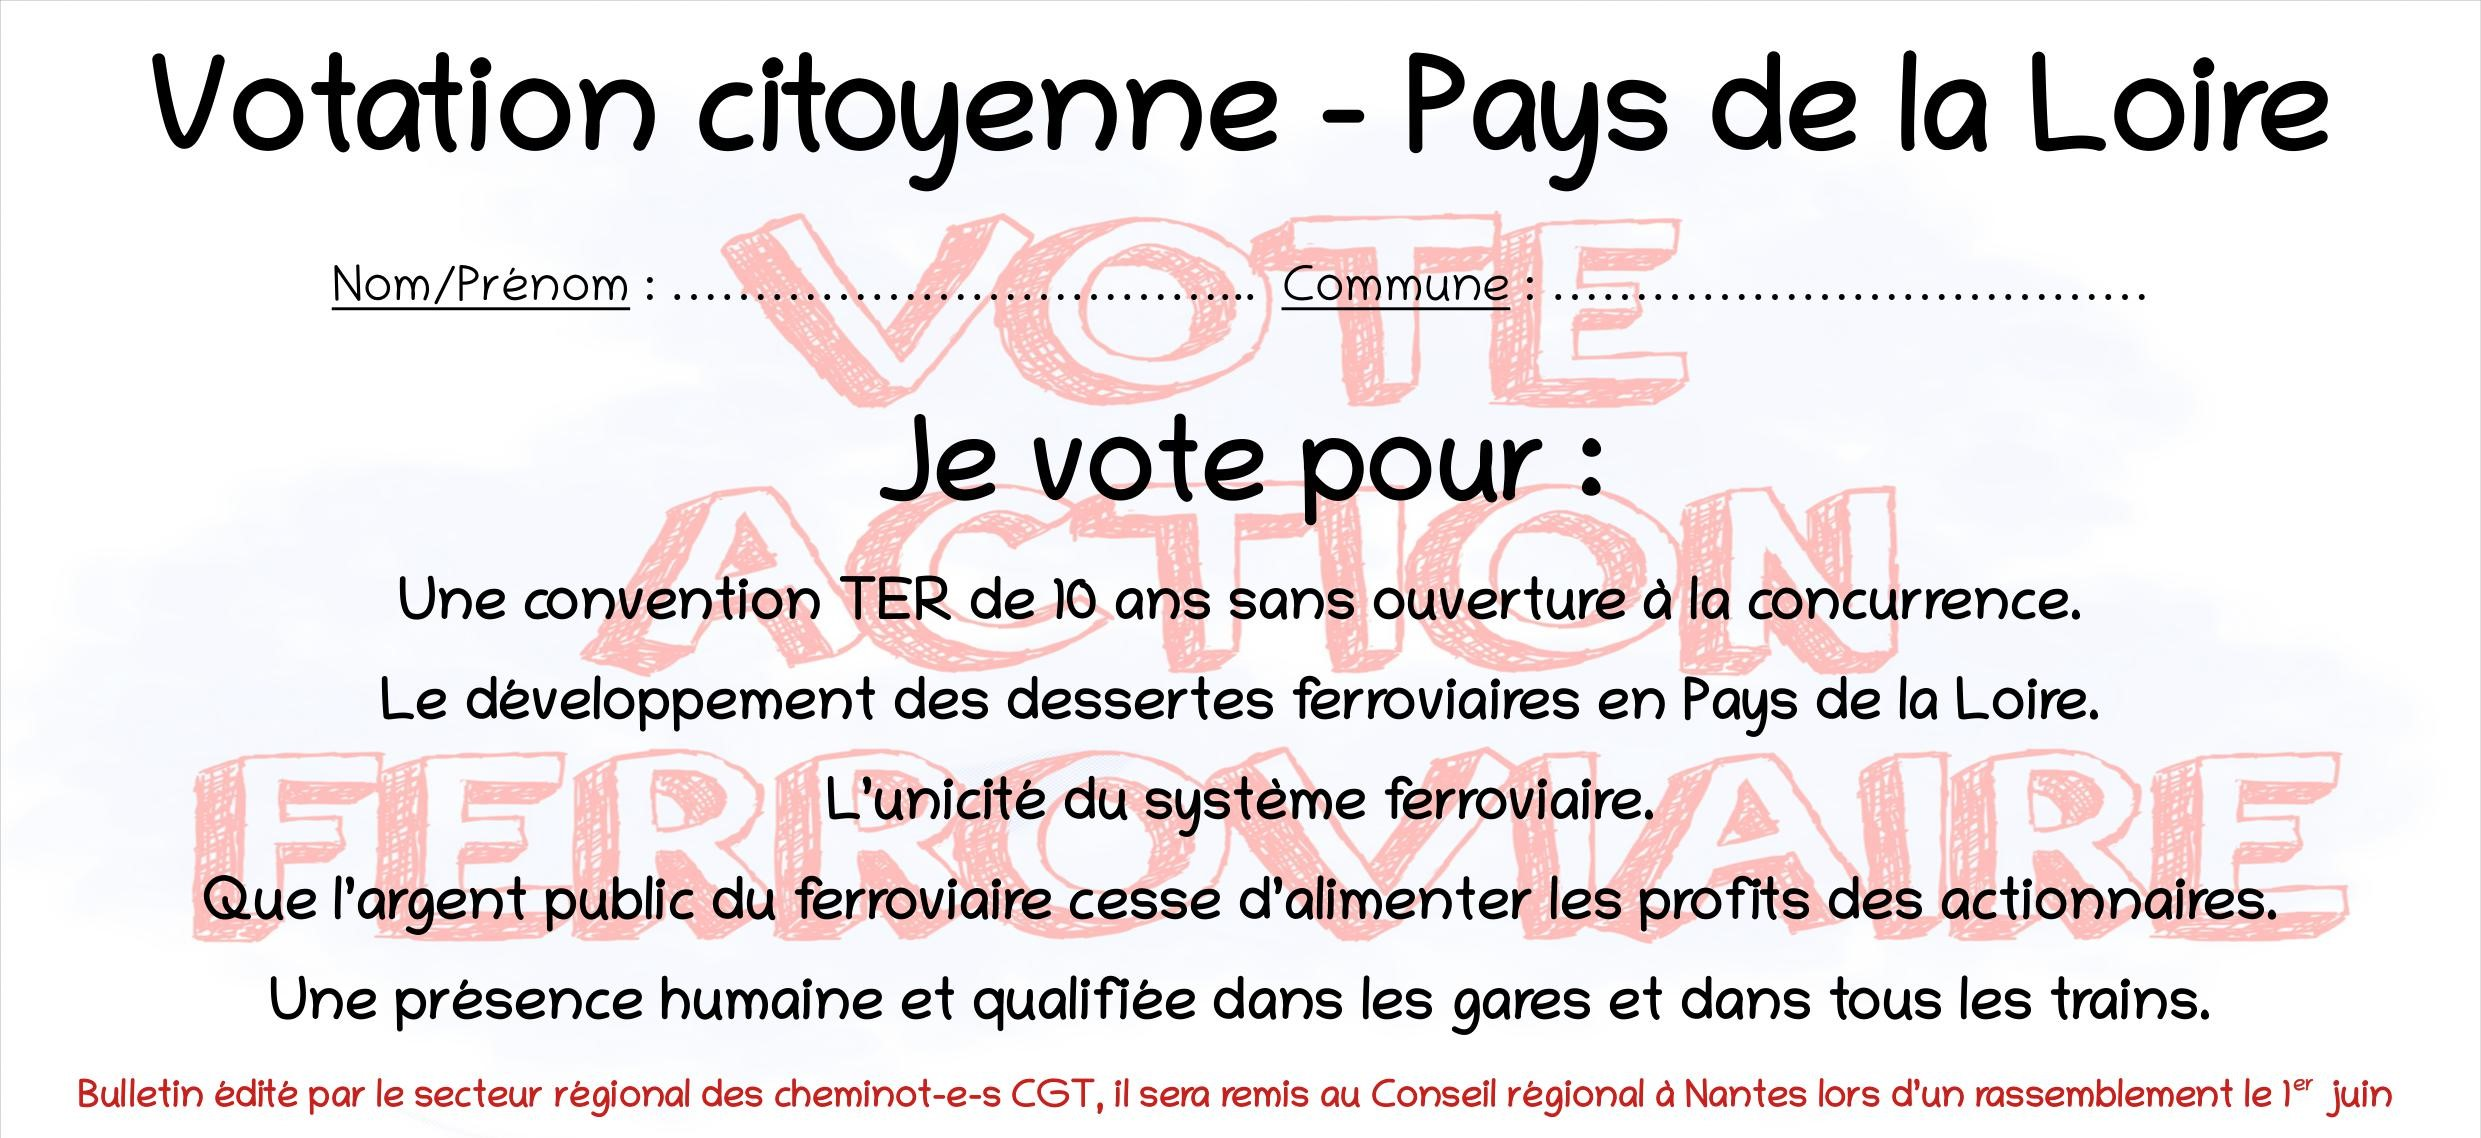 20210420_Votation_citoyenne_convention_TER_PDL_page-00013.jpg